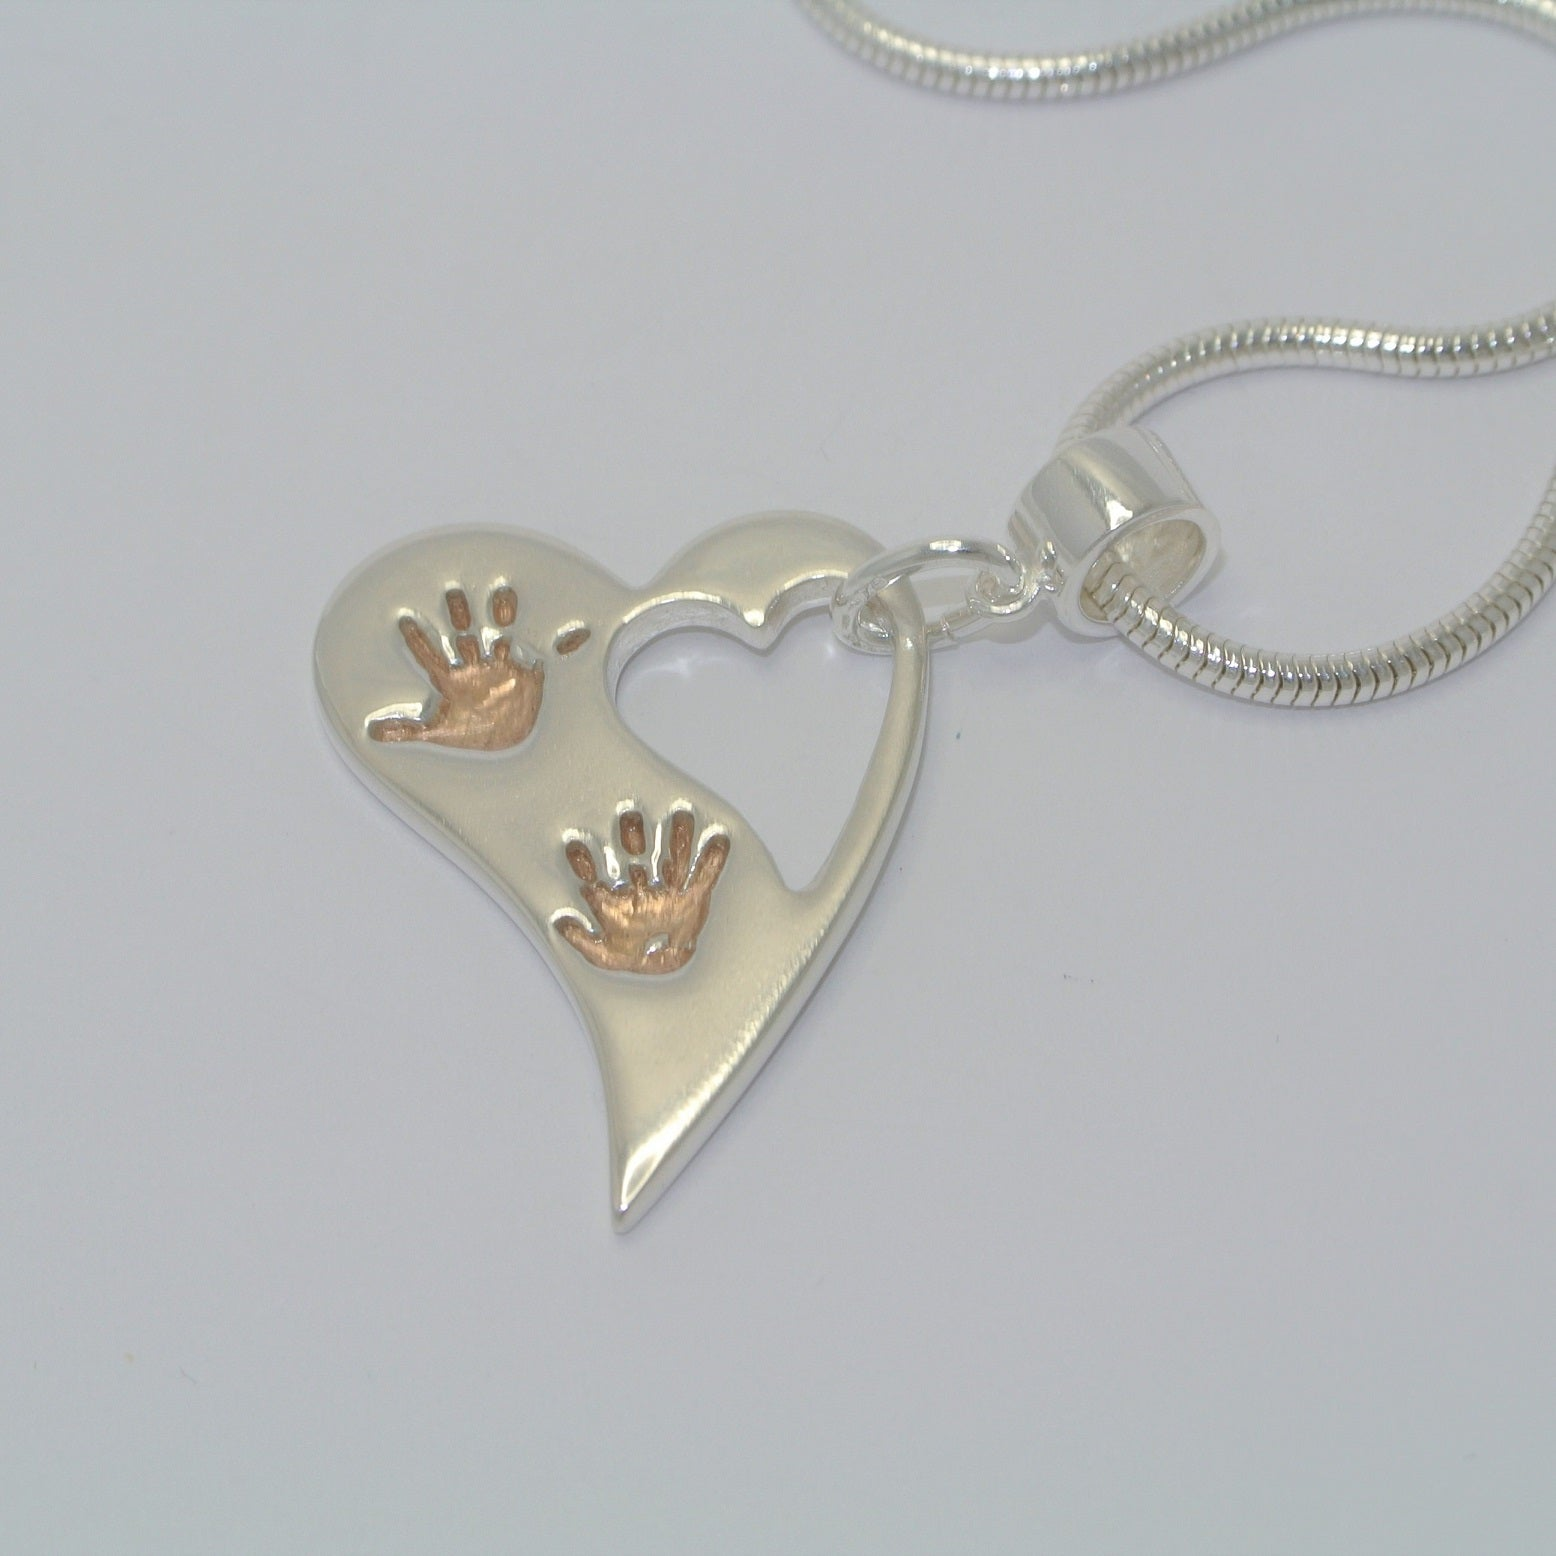 Two Handprint Wavy Heart Necklace with 18ct Rose Gold